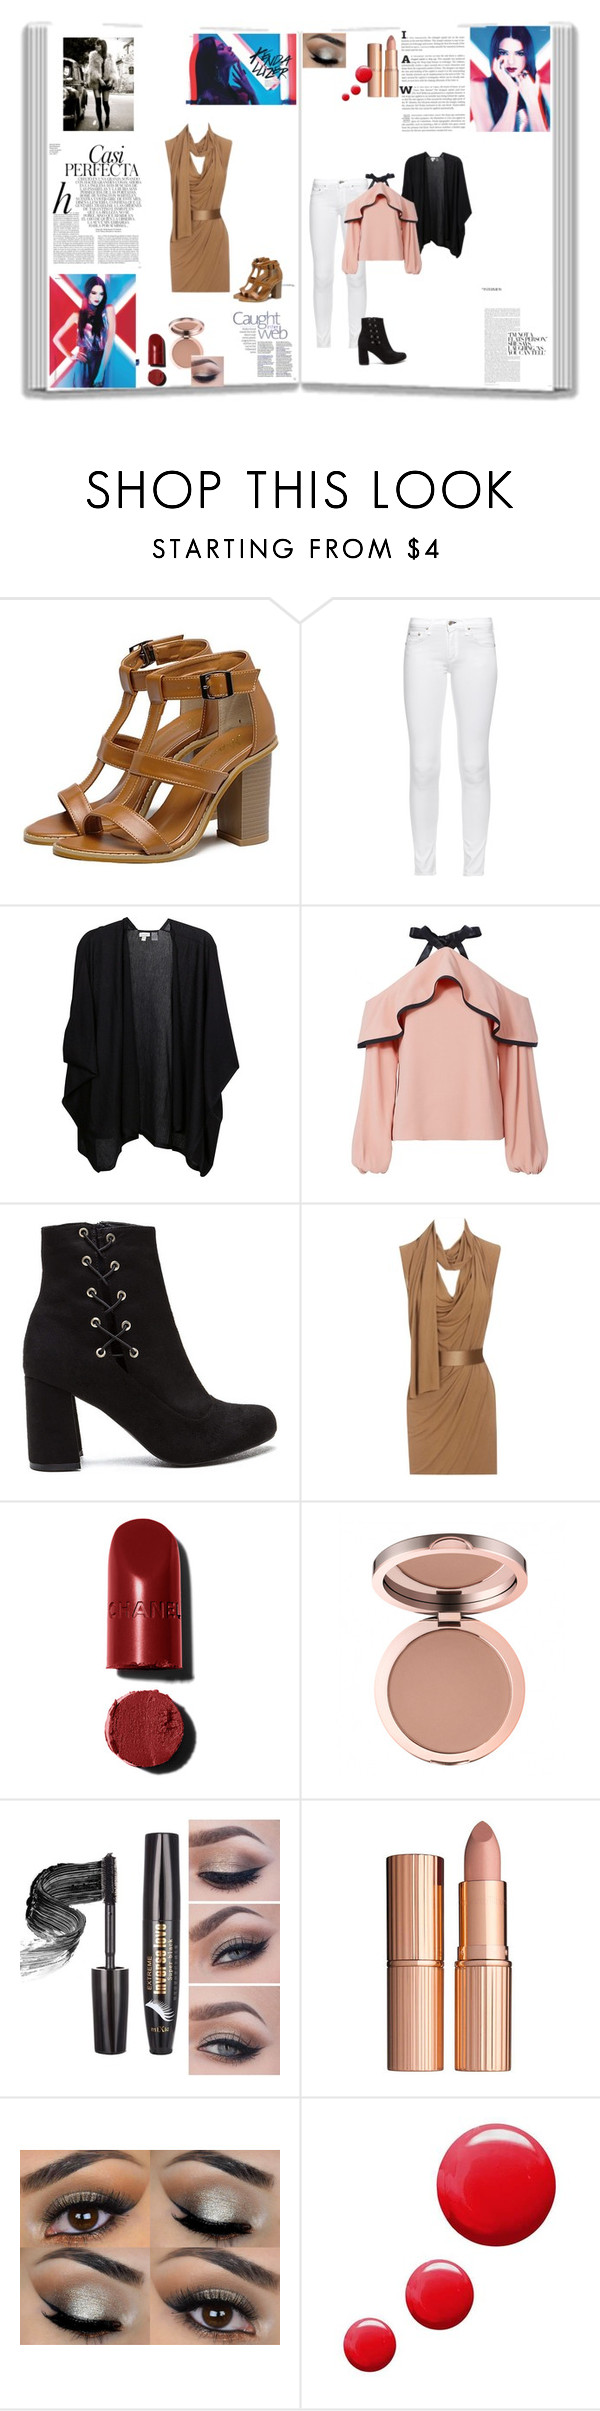 """""""Untitled"""" by water-element ❤ liked on Polyvore featuring rag & bone, Kinross, Alexis, Alexander McQueen, Charlotte Tilbury, Topshop, Paul Frank and Whiteley"""